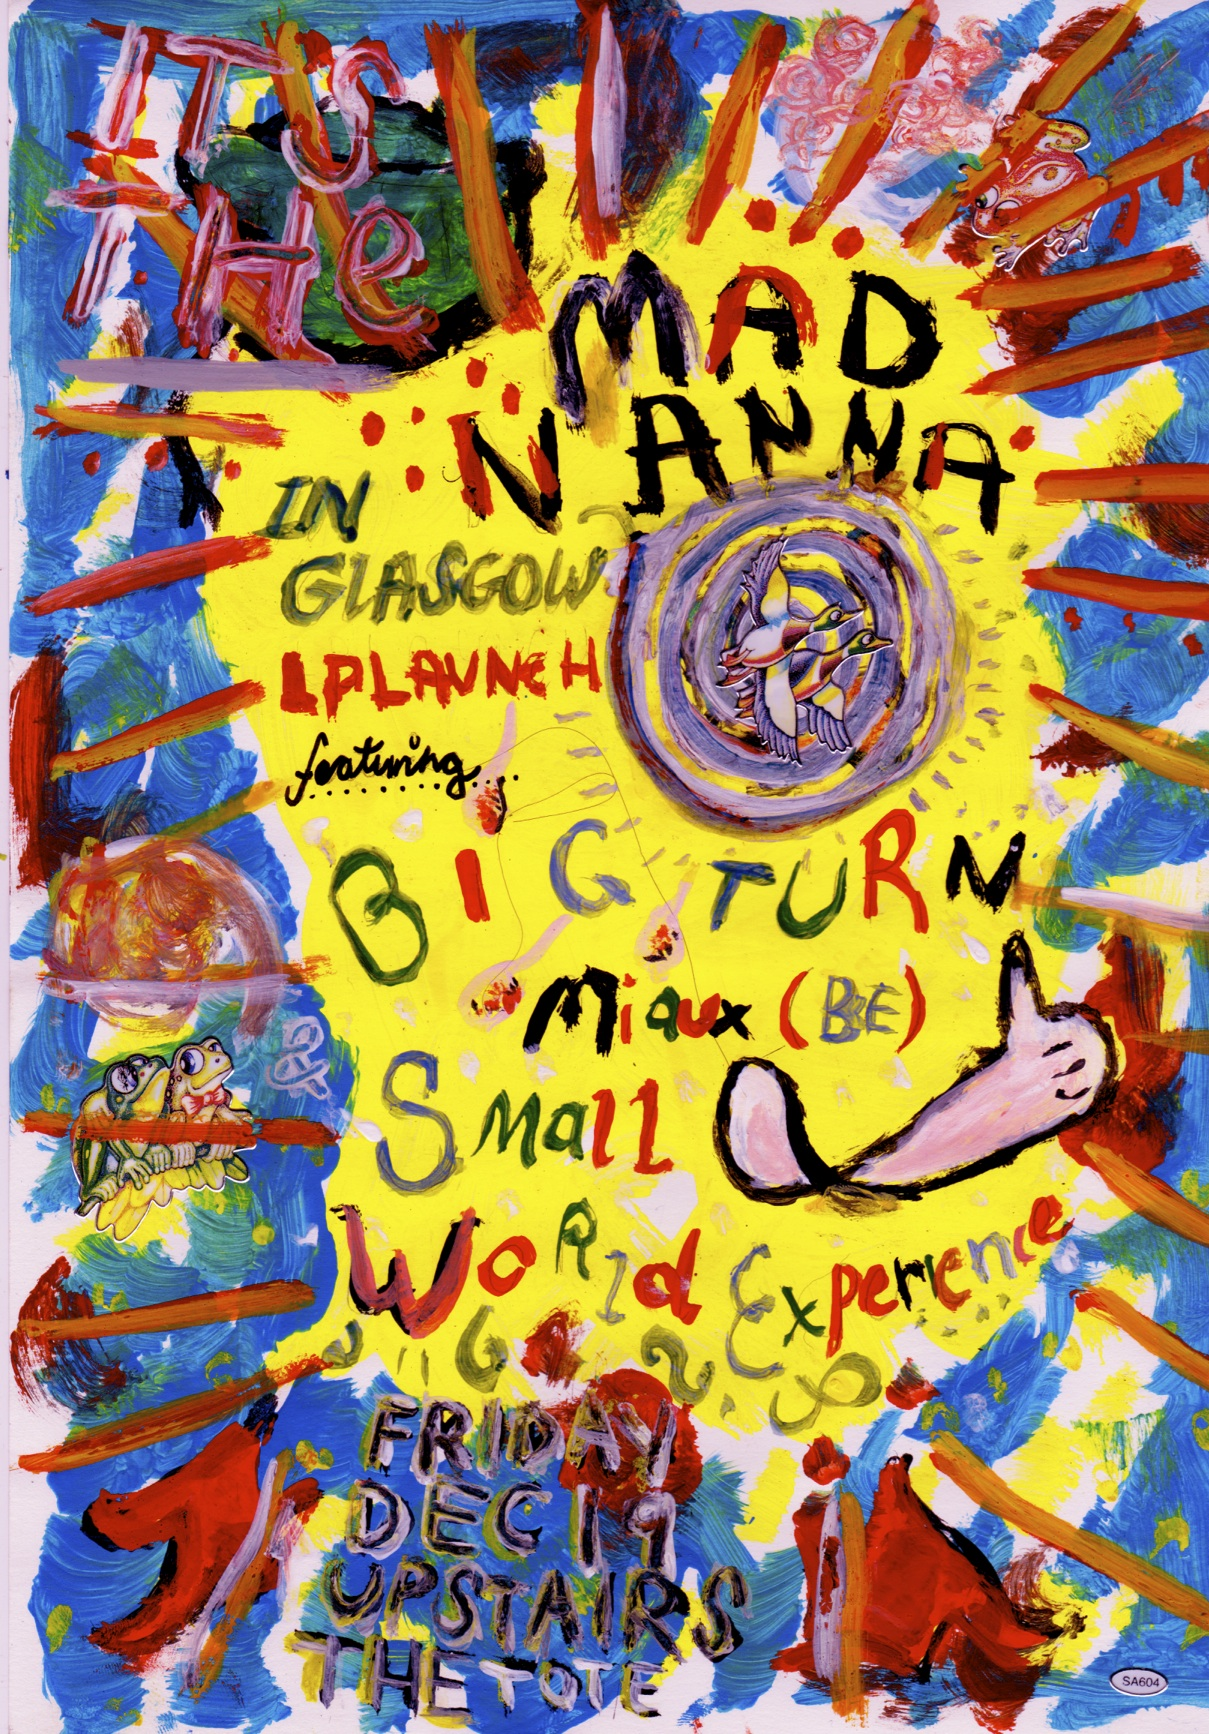 Mad Nanna In Glasgow LP launch